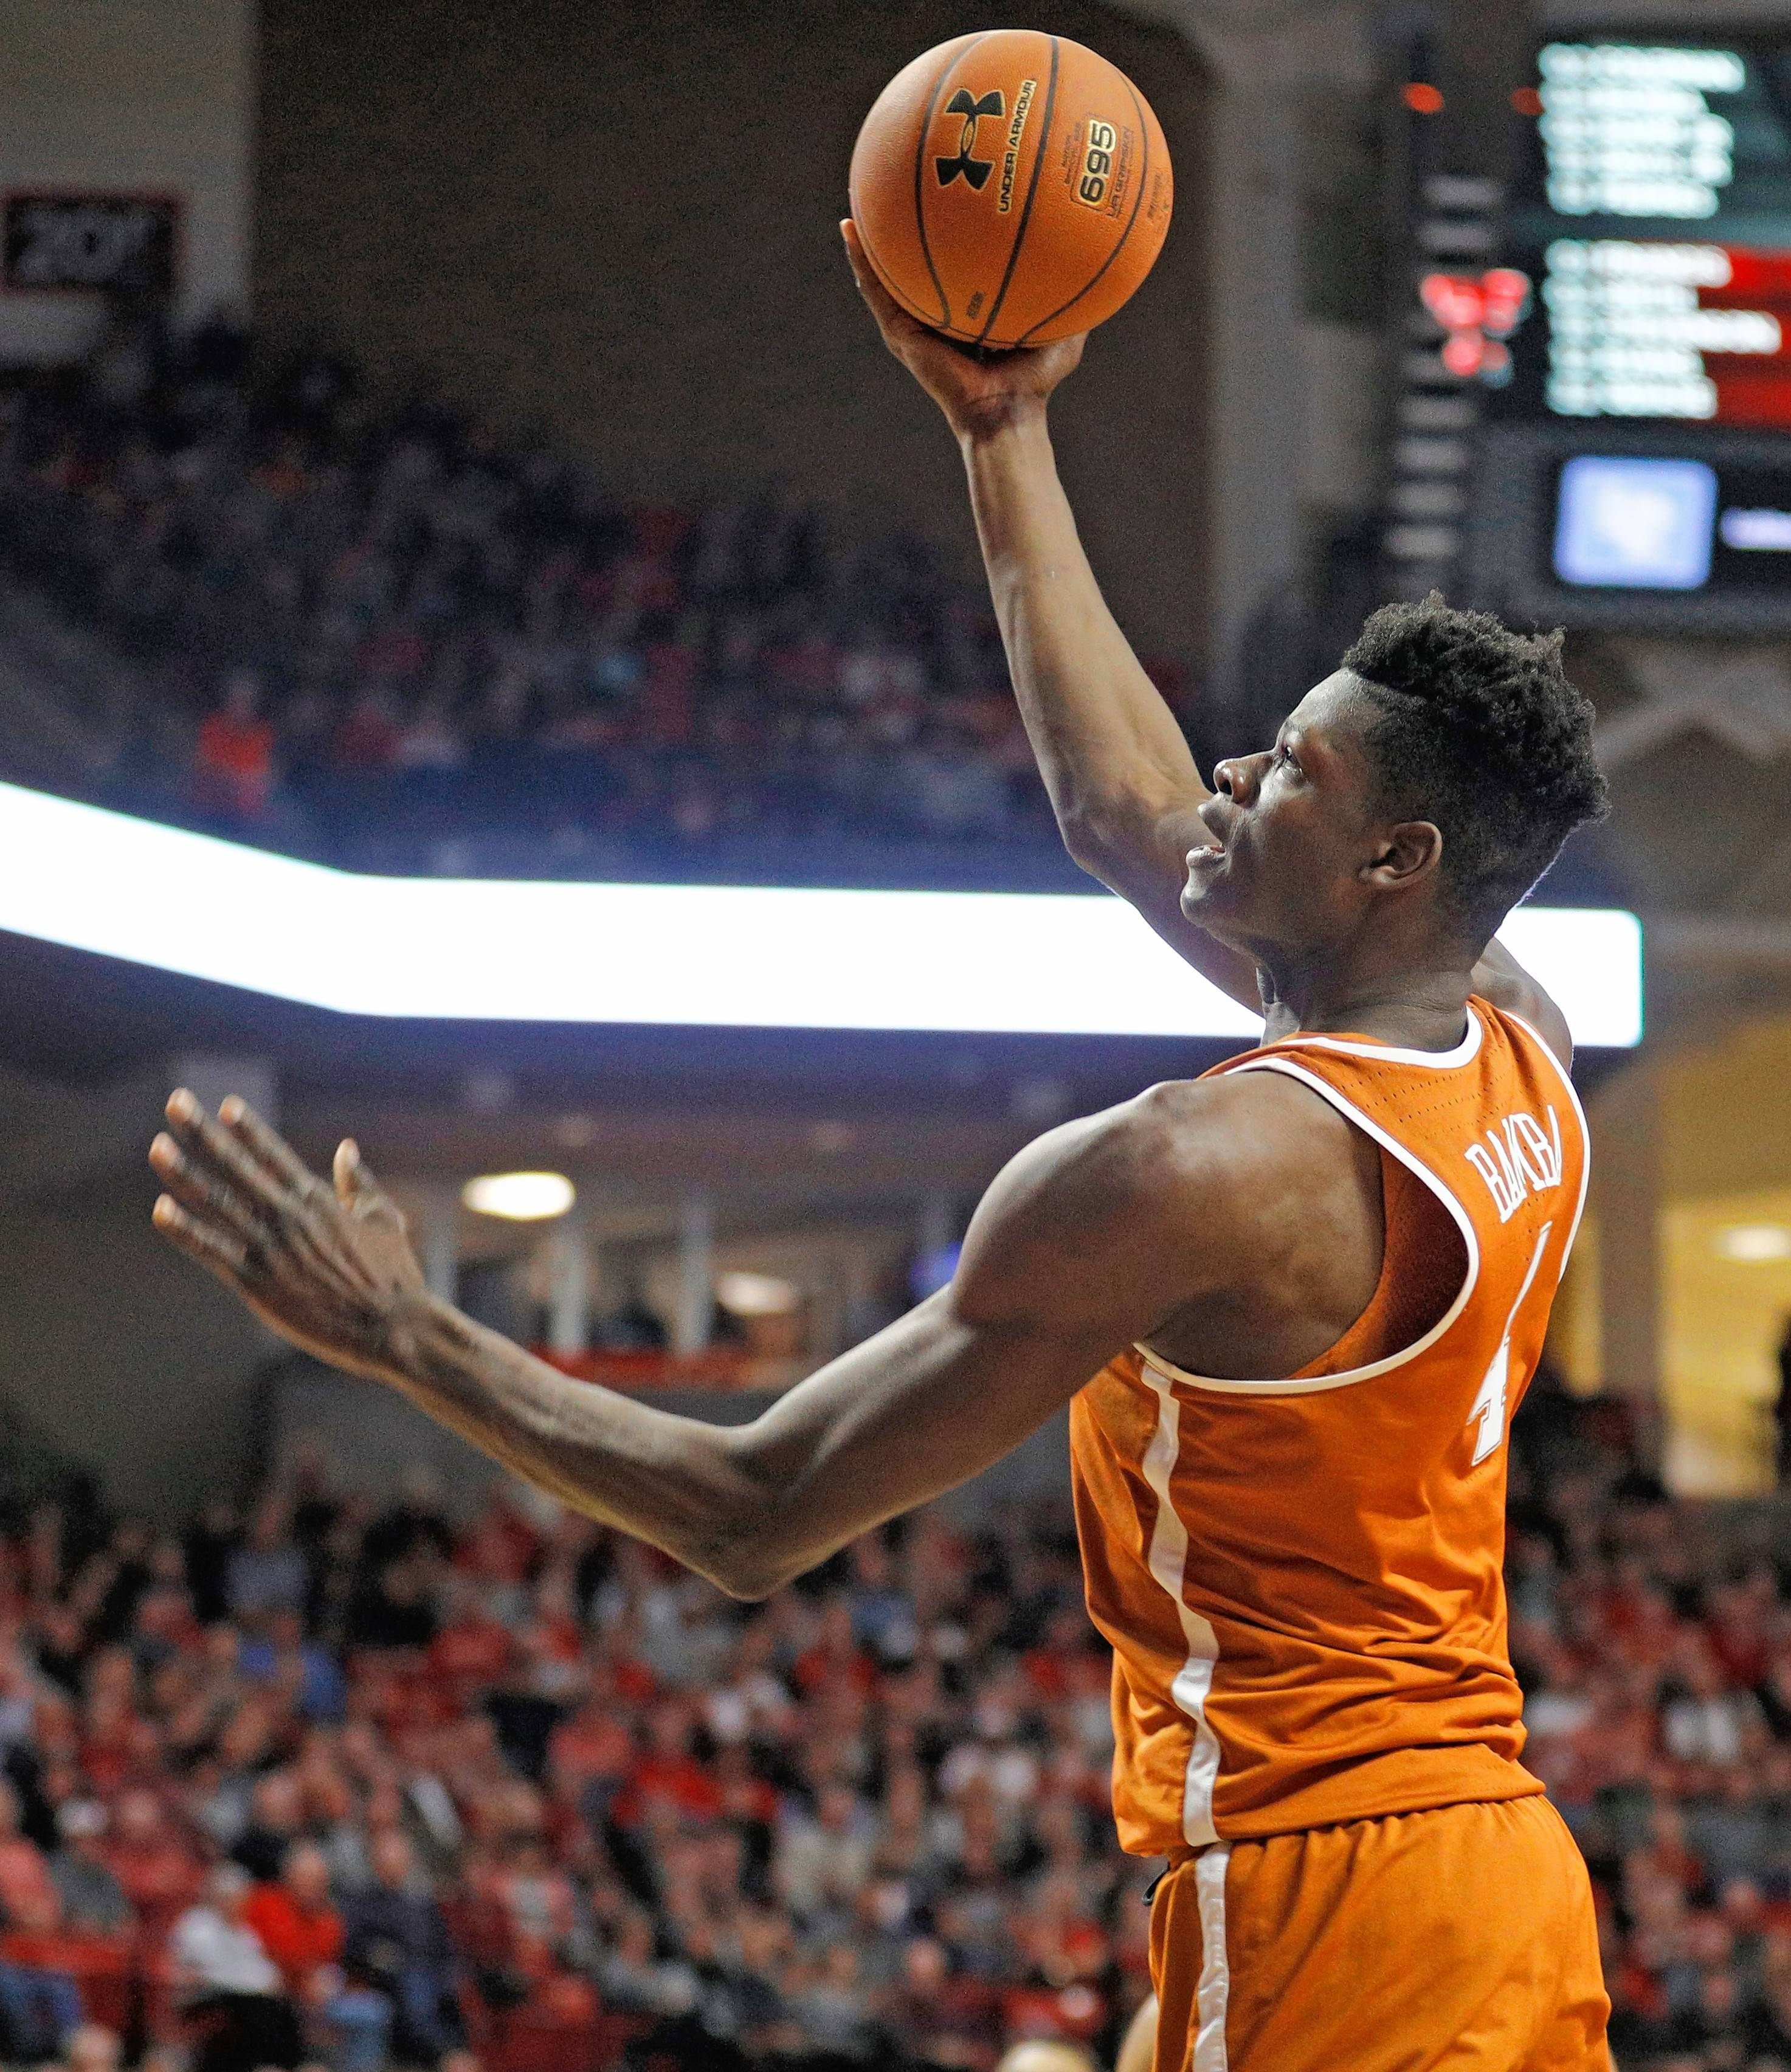 Why Bamba and his record-setting wingspan don't fit current NBA trend